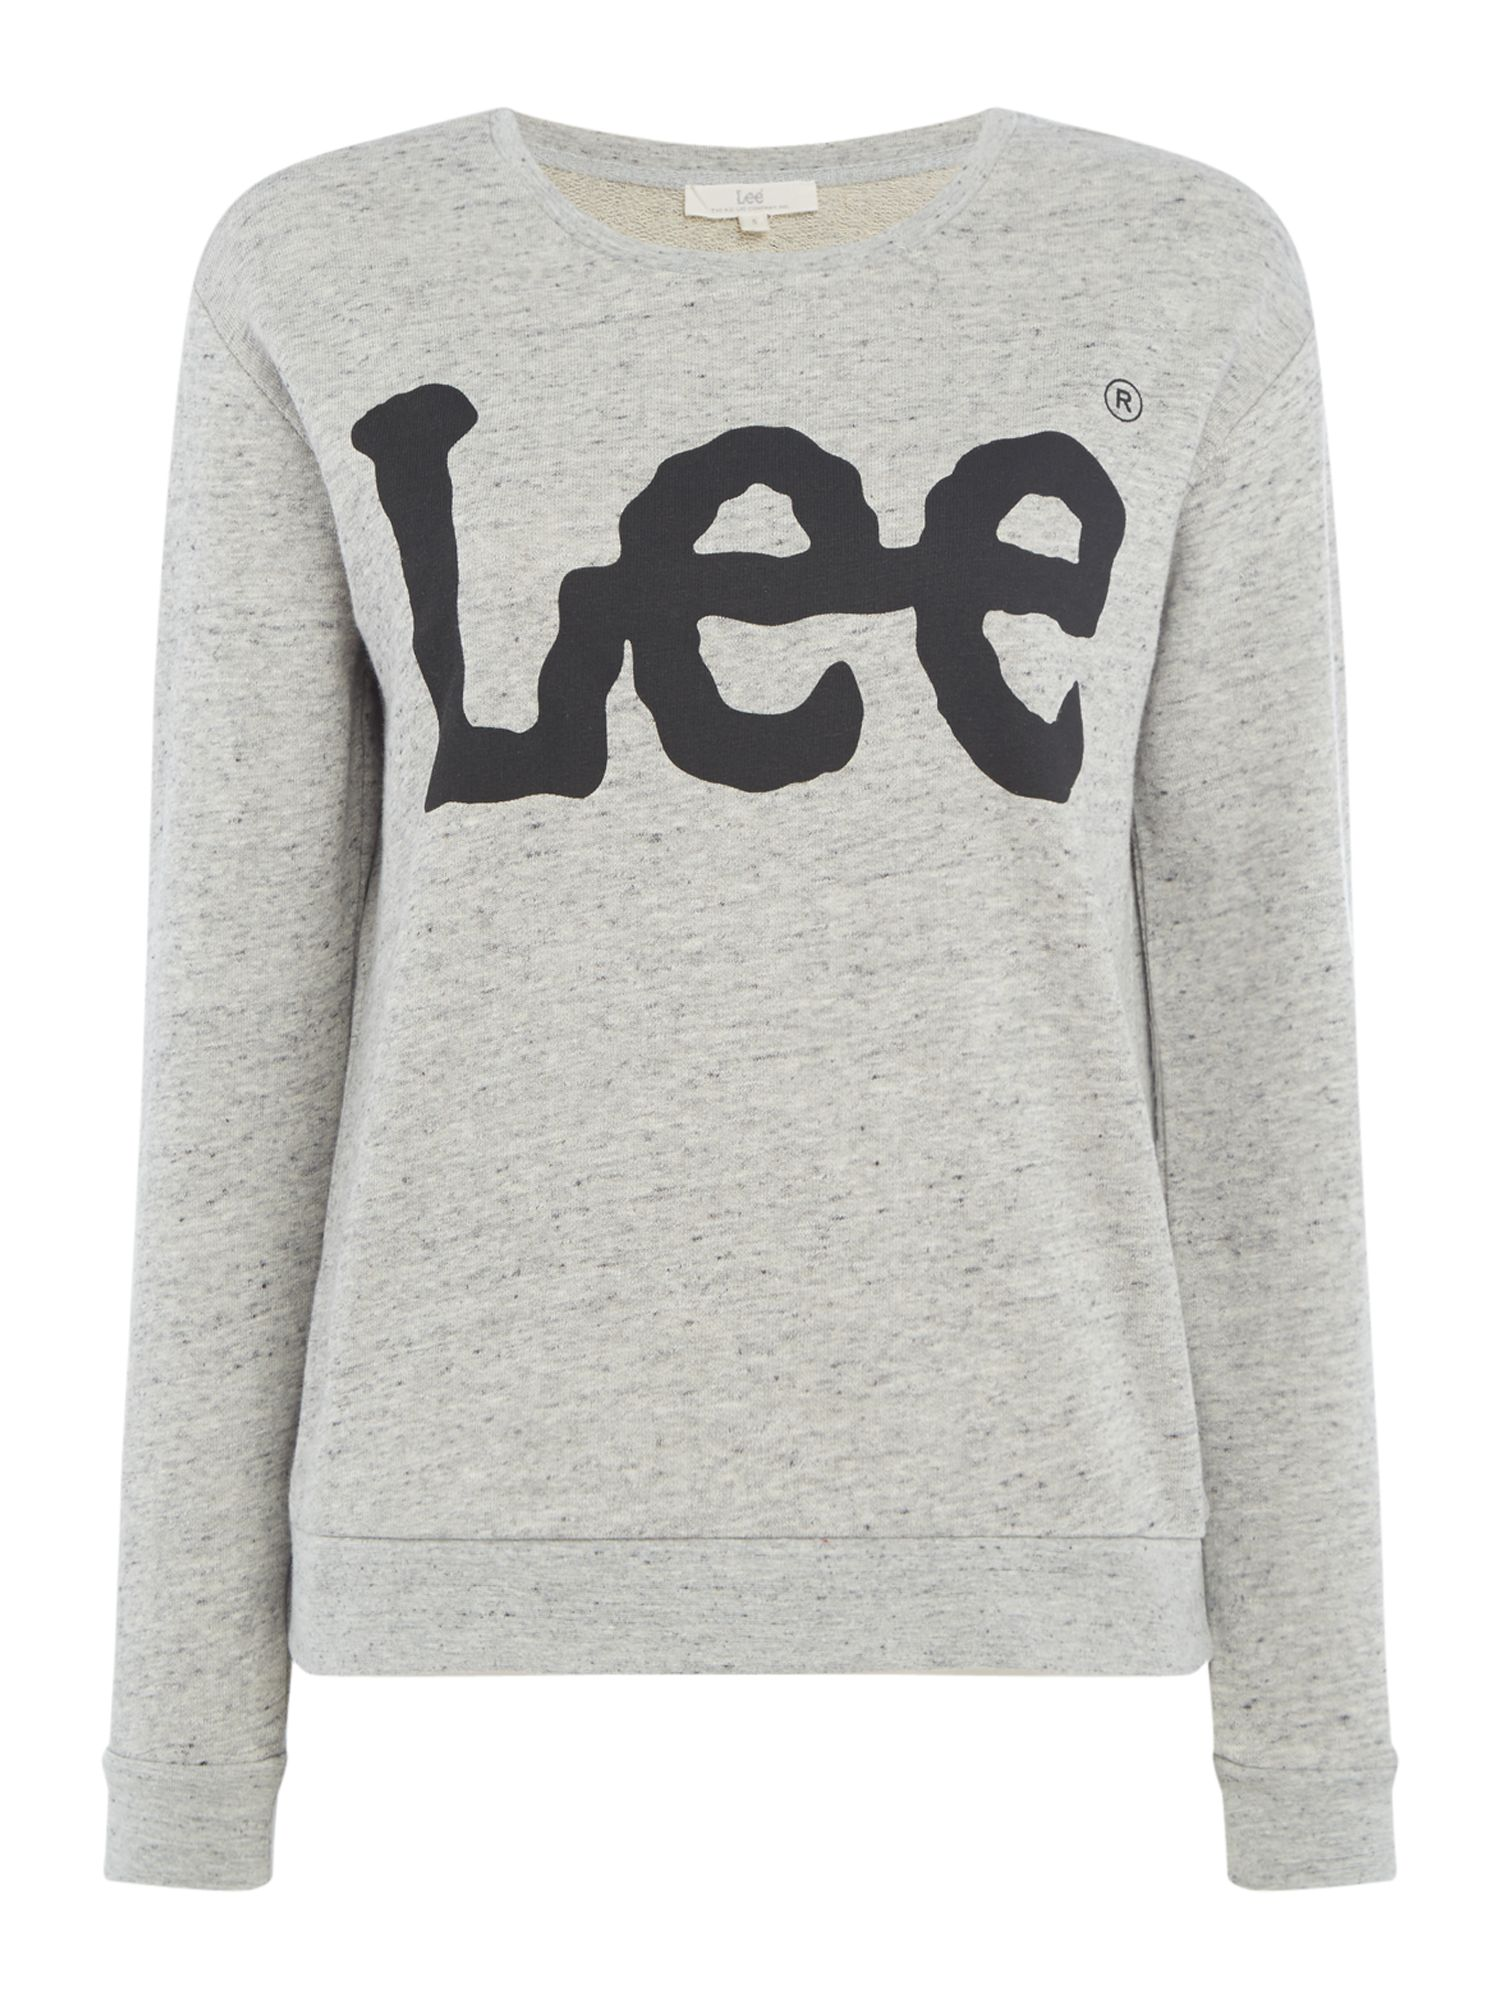 Lee Sweatshirt With Large Logo, Grey